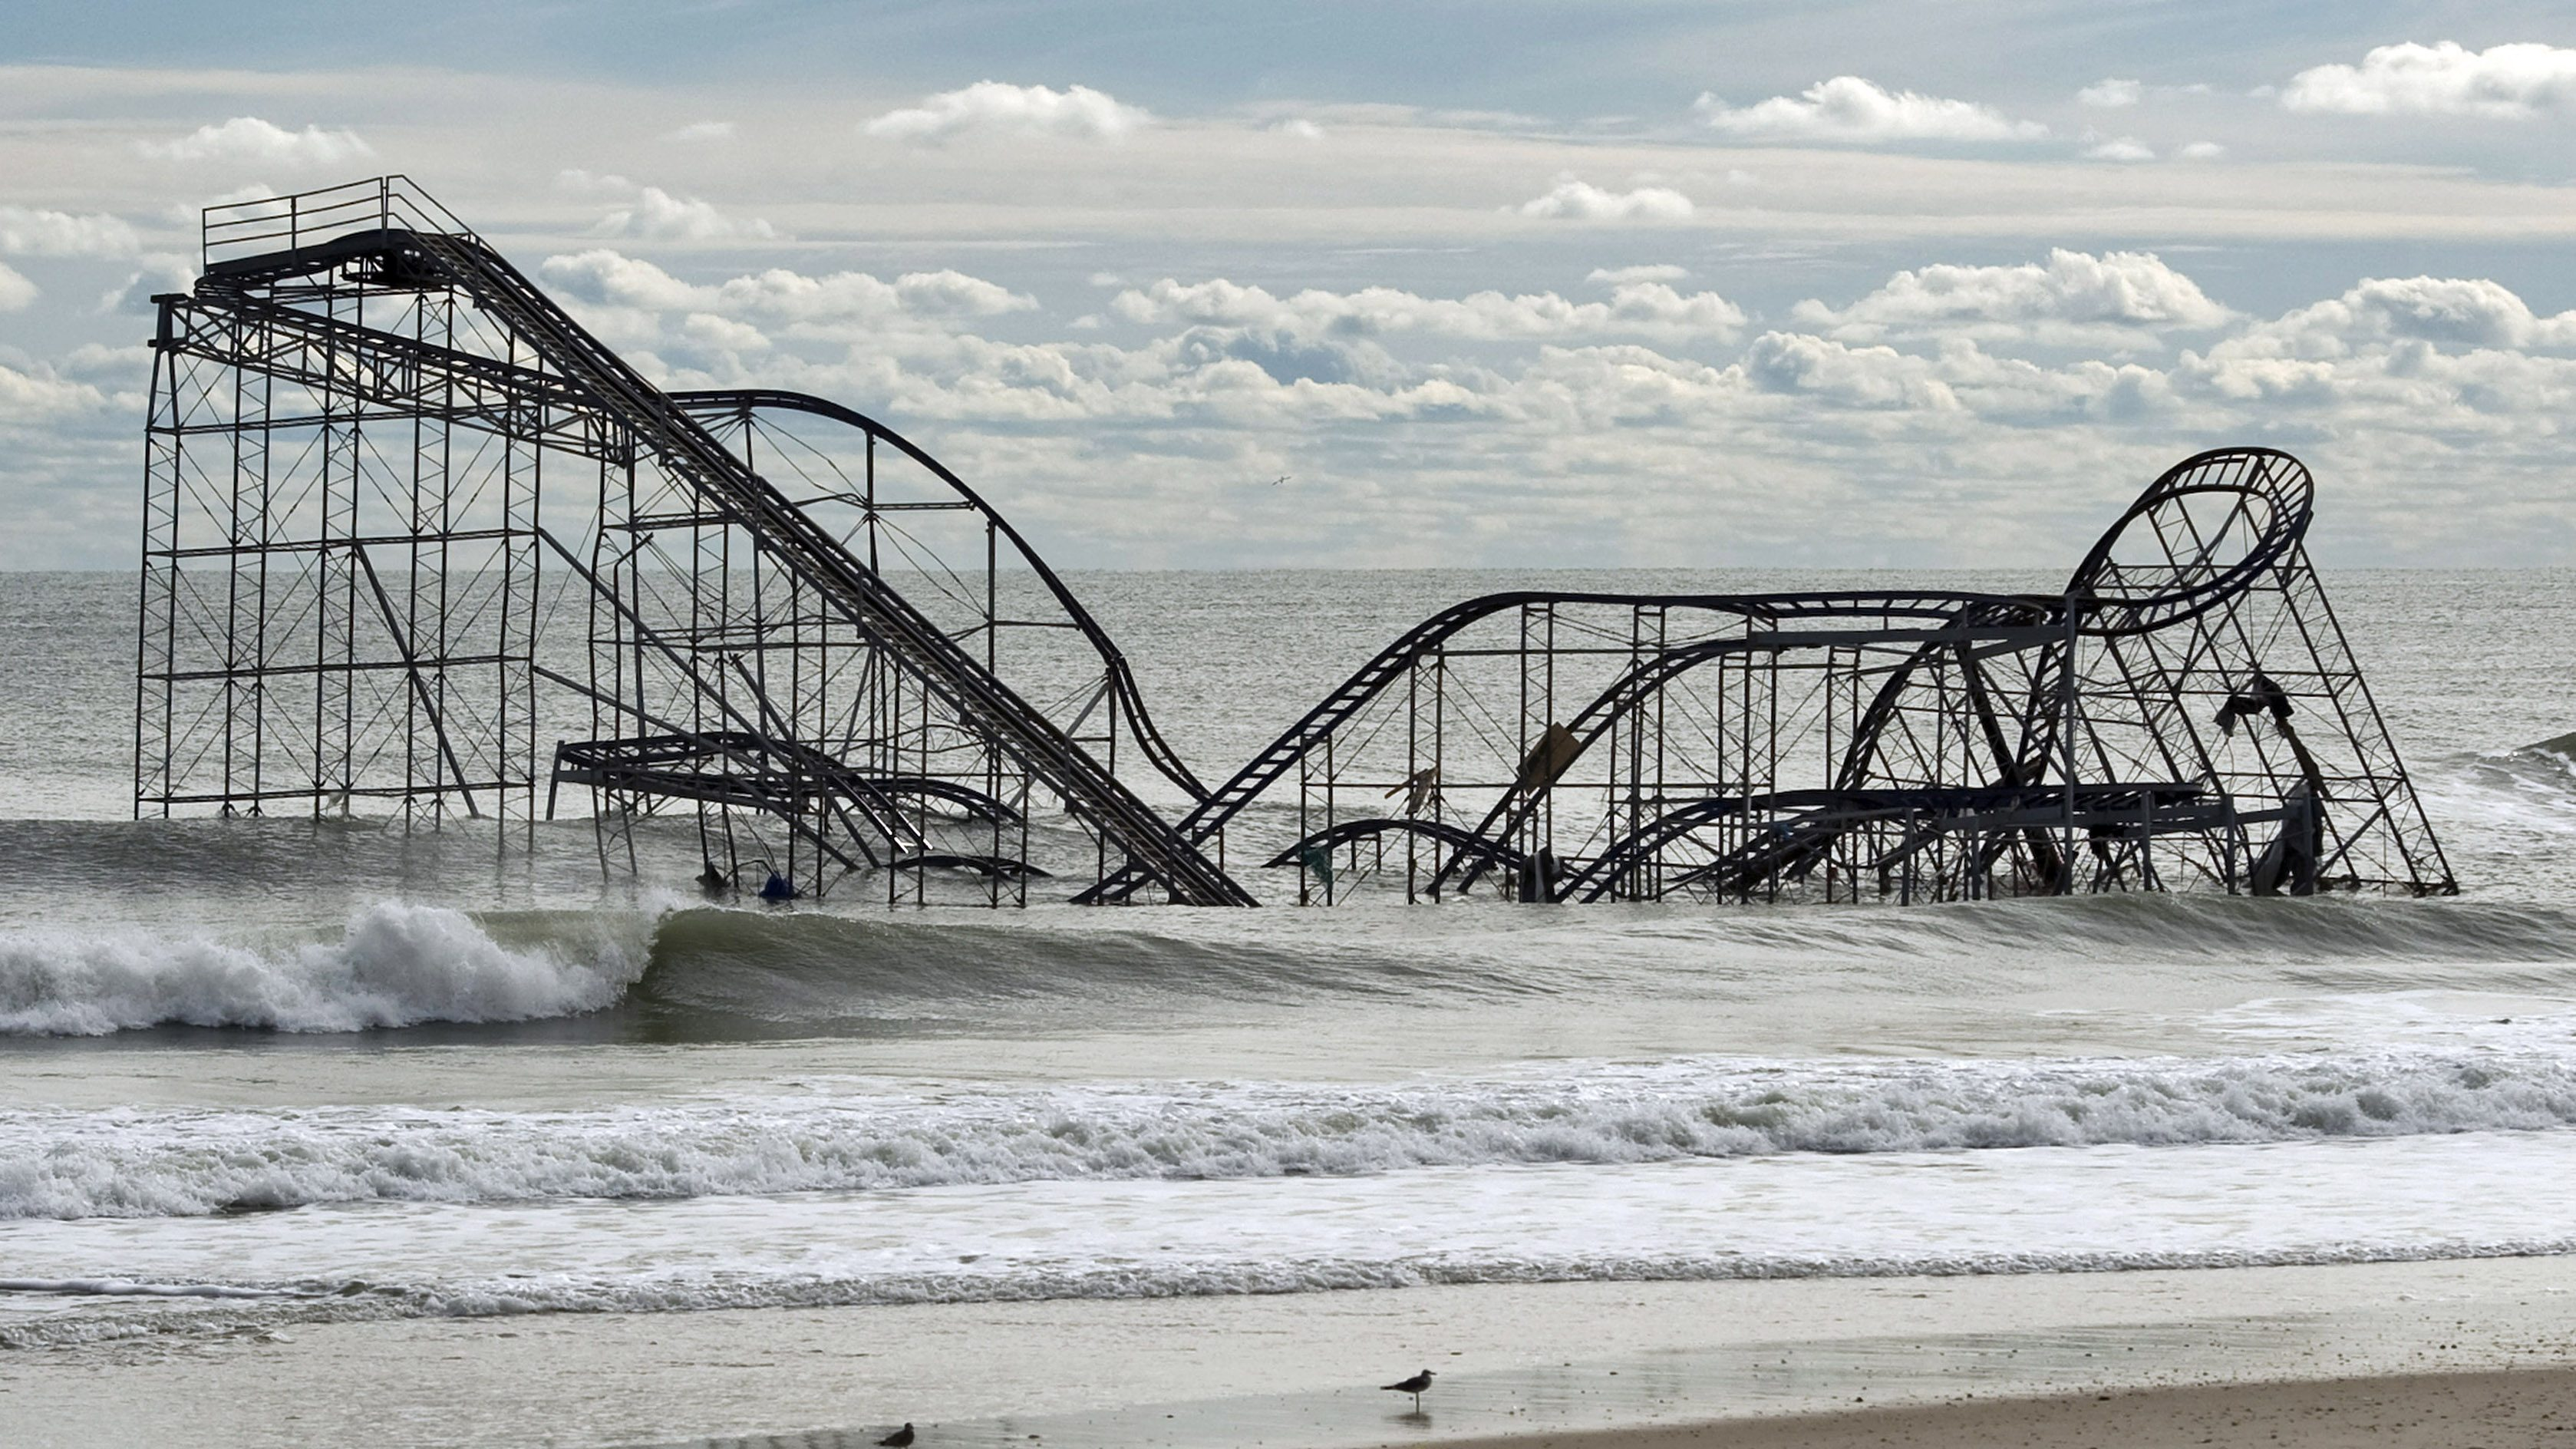 a roller coaster in the middle of an shoreline